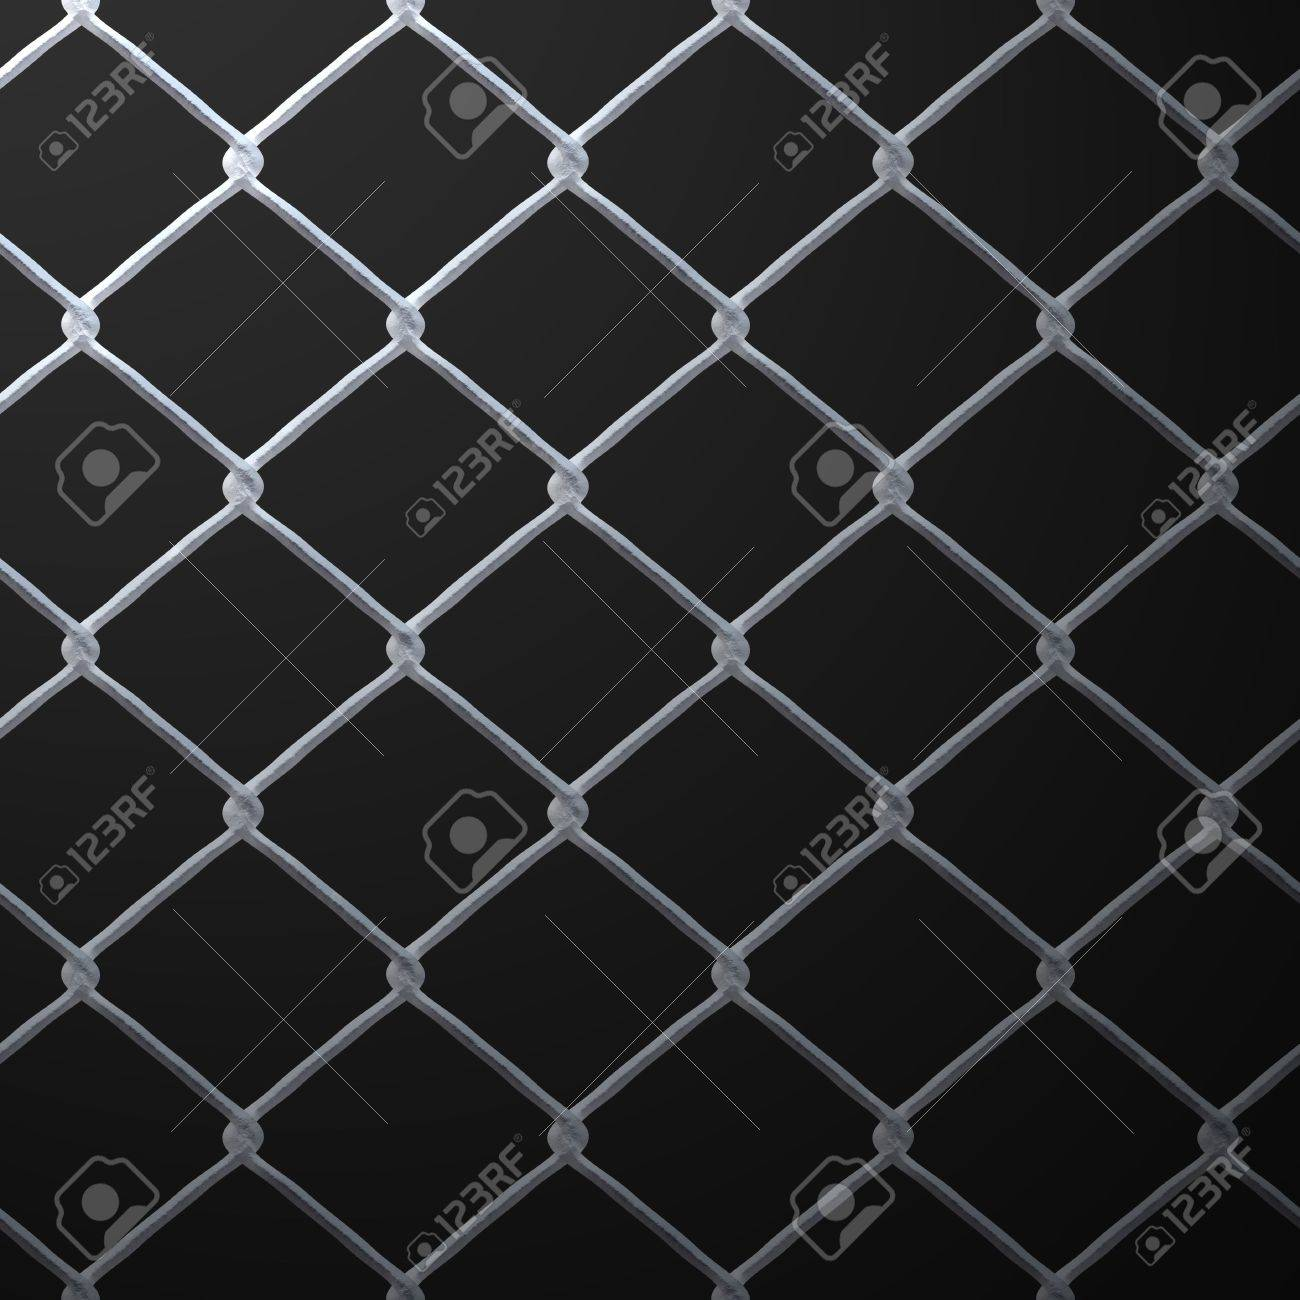 A 3D Chain Link Fence Texture That Makes A Great Backdrop. Stock ...